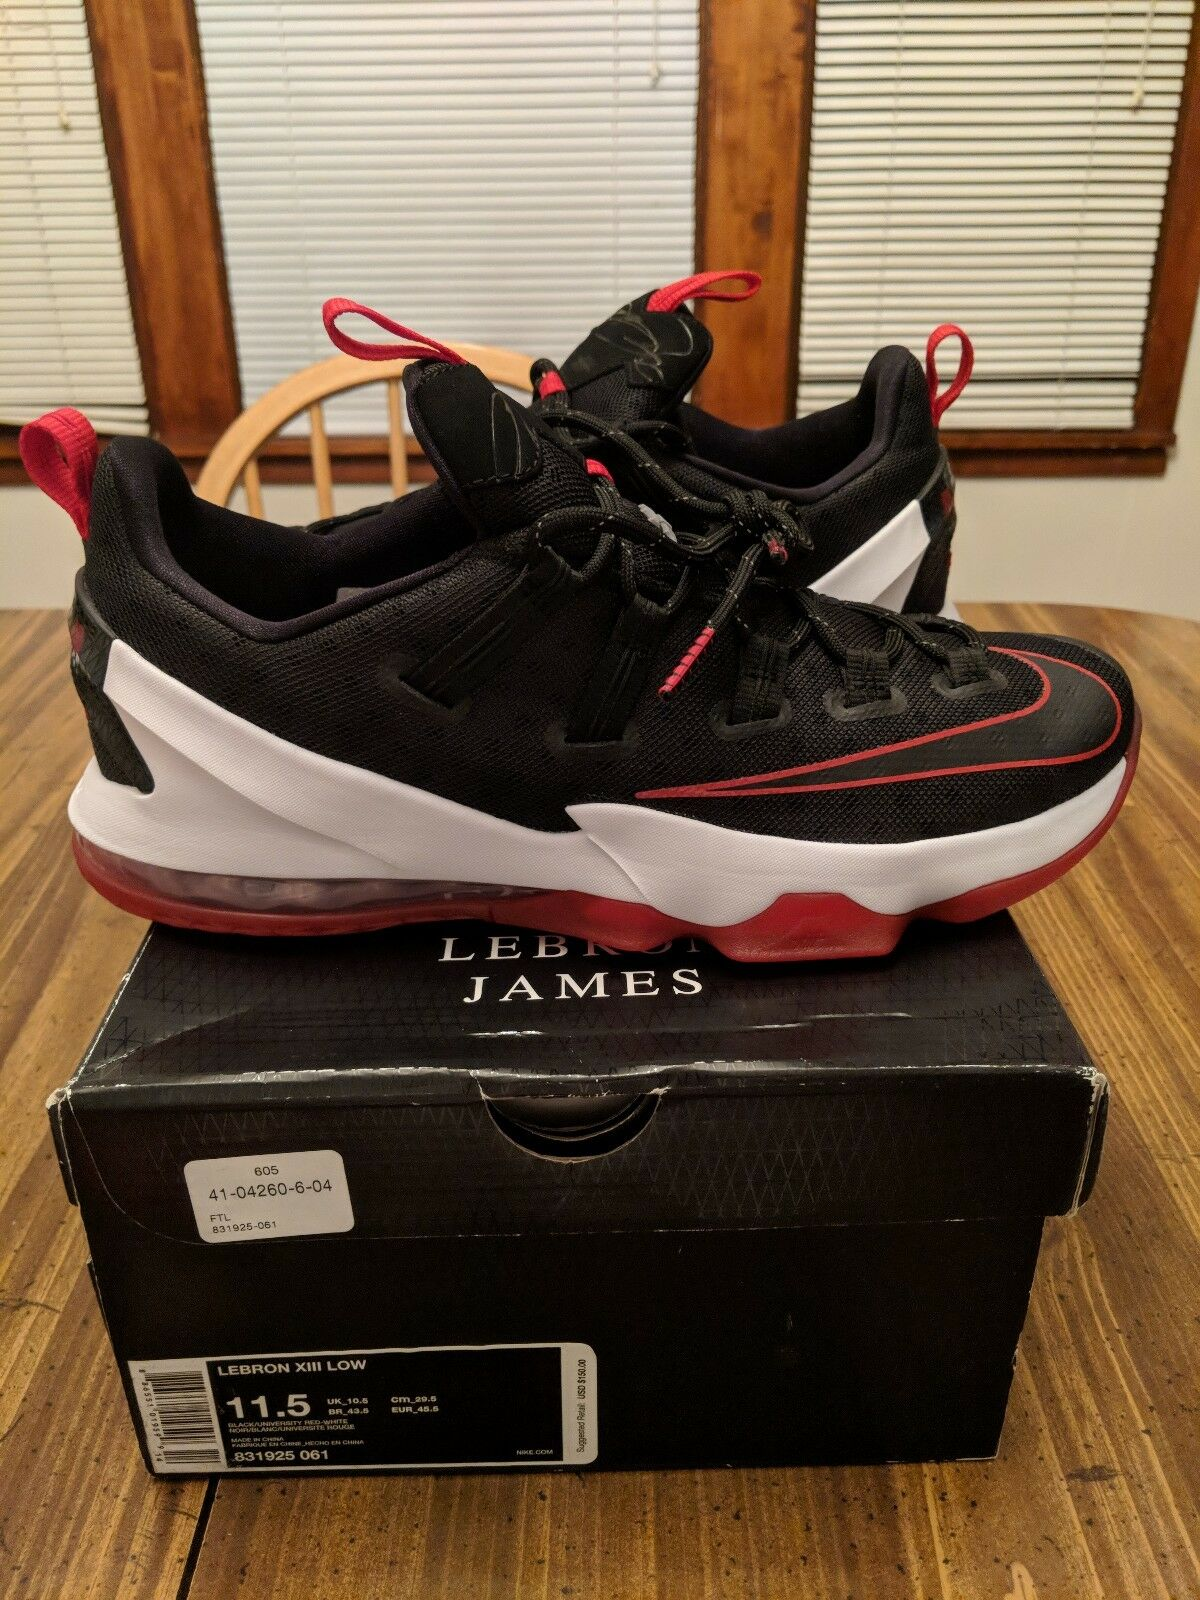 Nike Lebron 13 Xlll Low Size 11.5 Uomo basketball nero/unv red-white 831925061